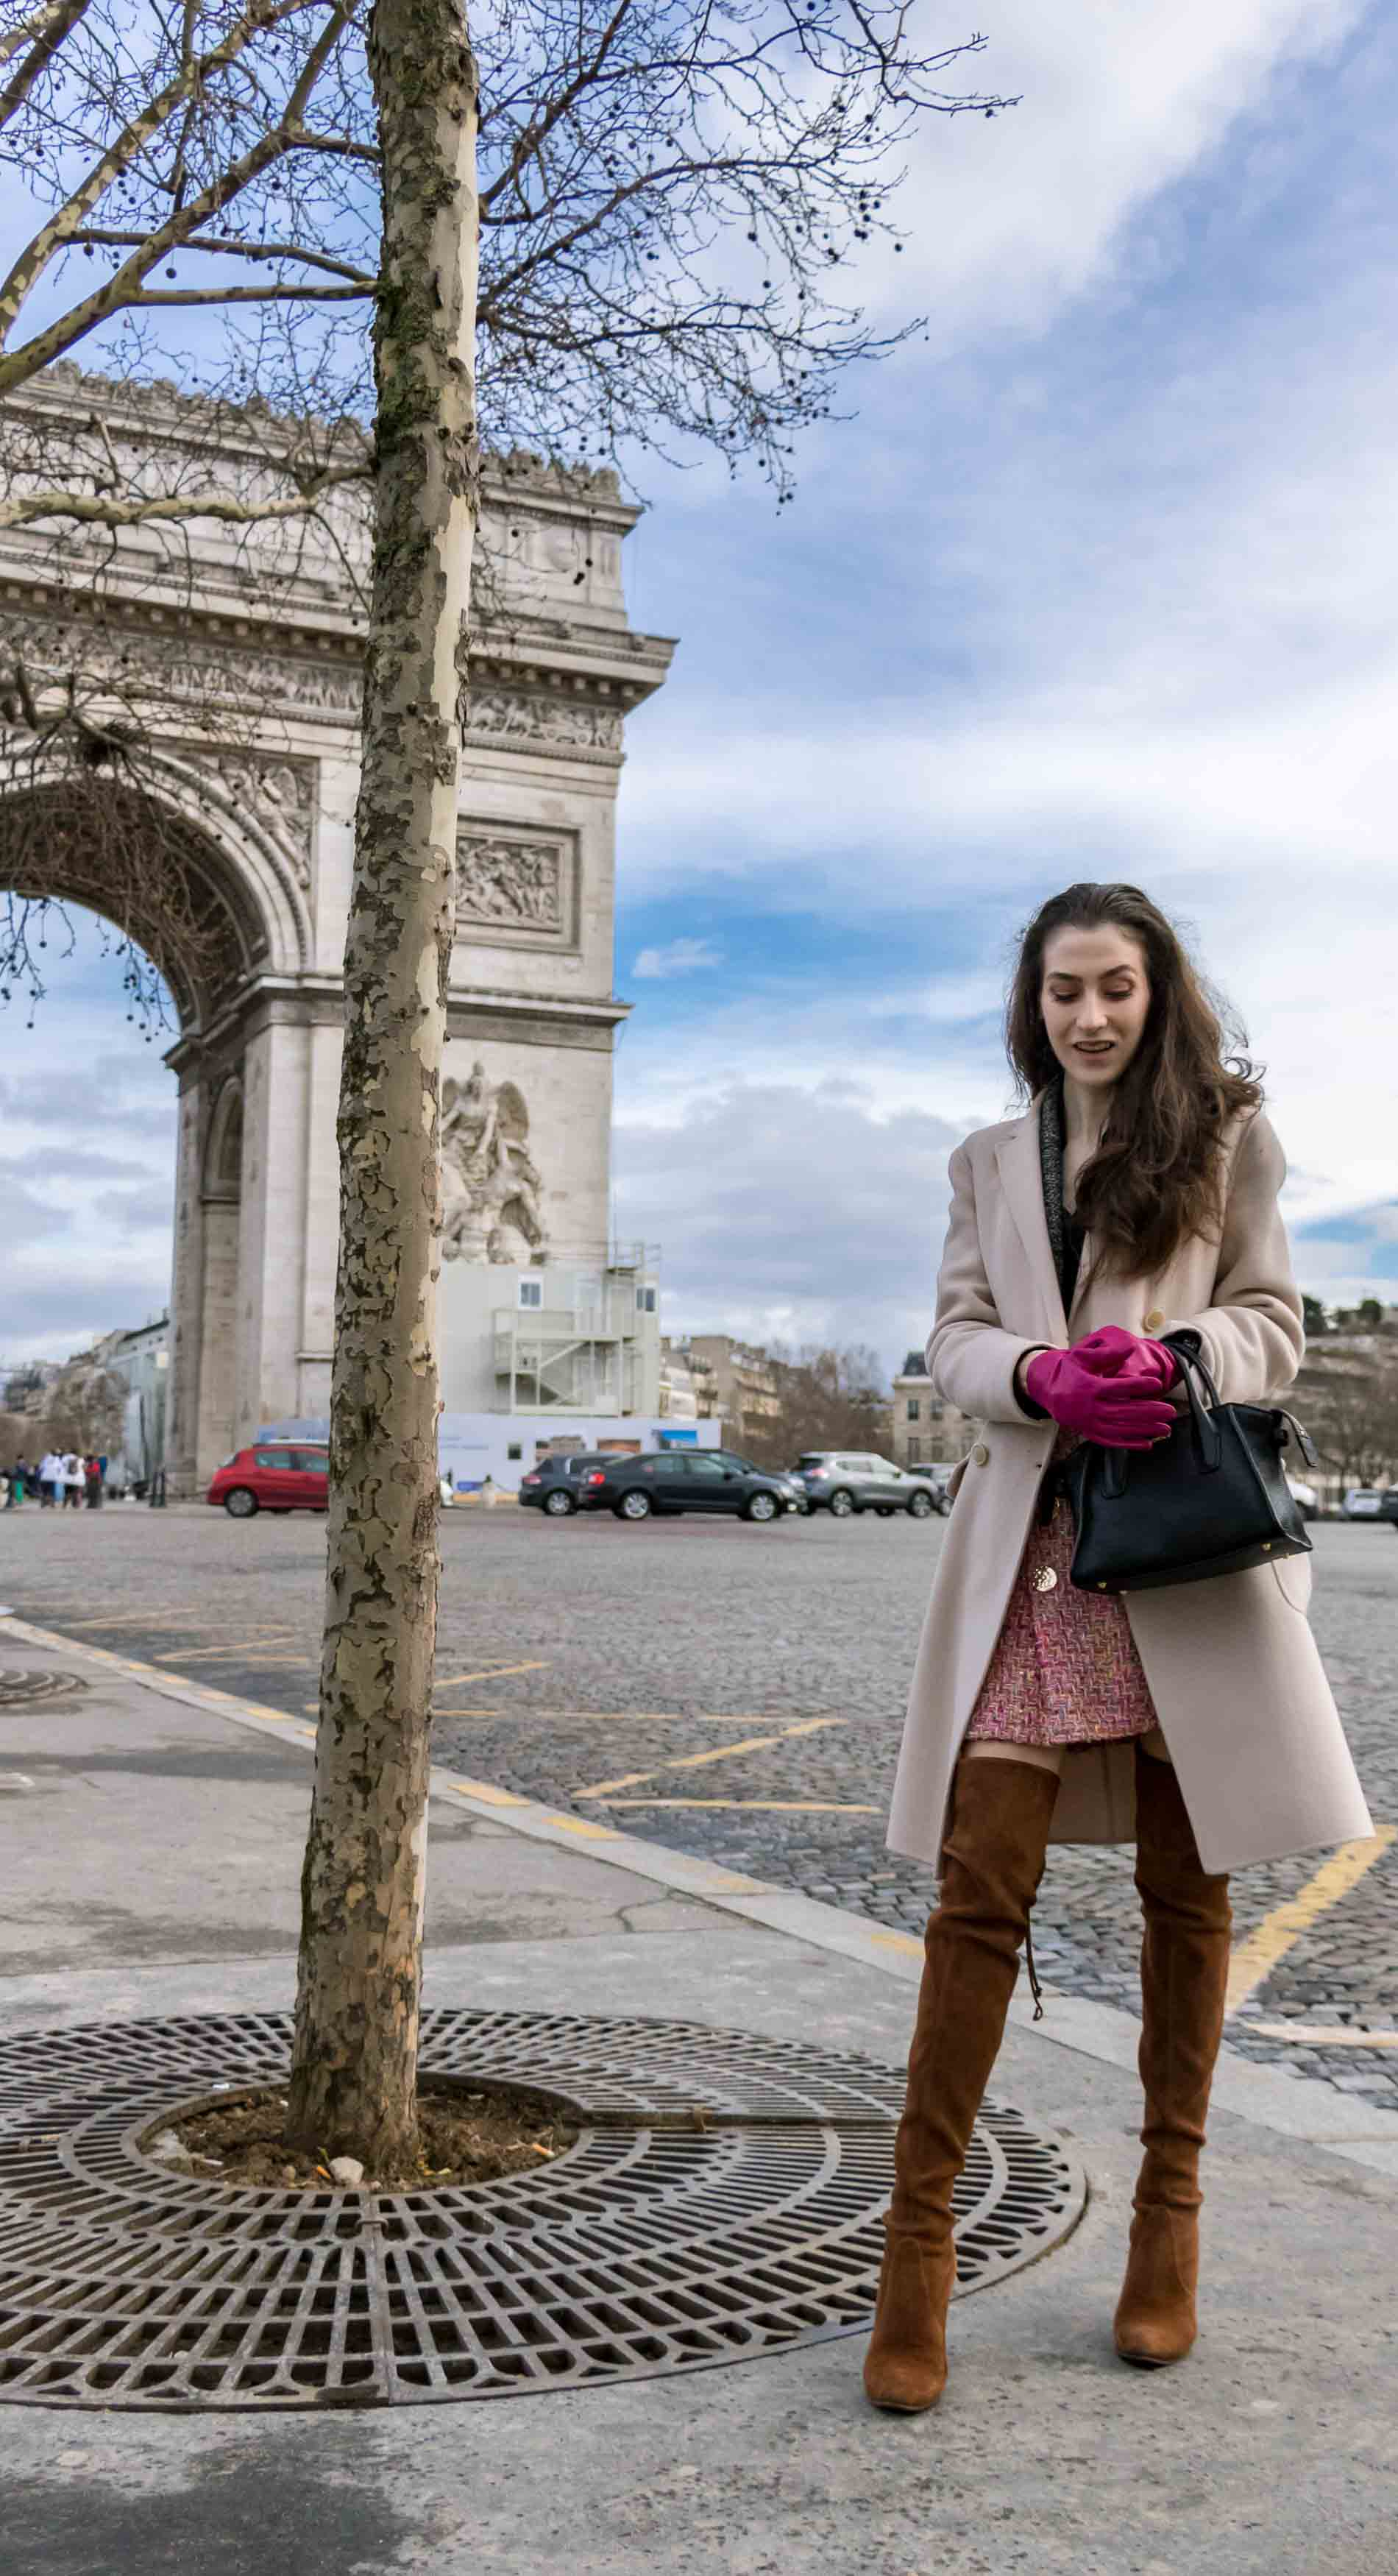 Fashion Blogger Veronika Lipar of Brunette from Wall Street dressed in Stuart Weitzman o tkboots, Weekend Maxmara coat, Storets pink tweed shorts, black shirt, pink leather gloves and black small bag during Paris fashion week autumn winter 2018/19 standing infant of the Arc du Triomphe